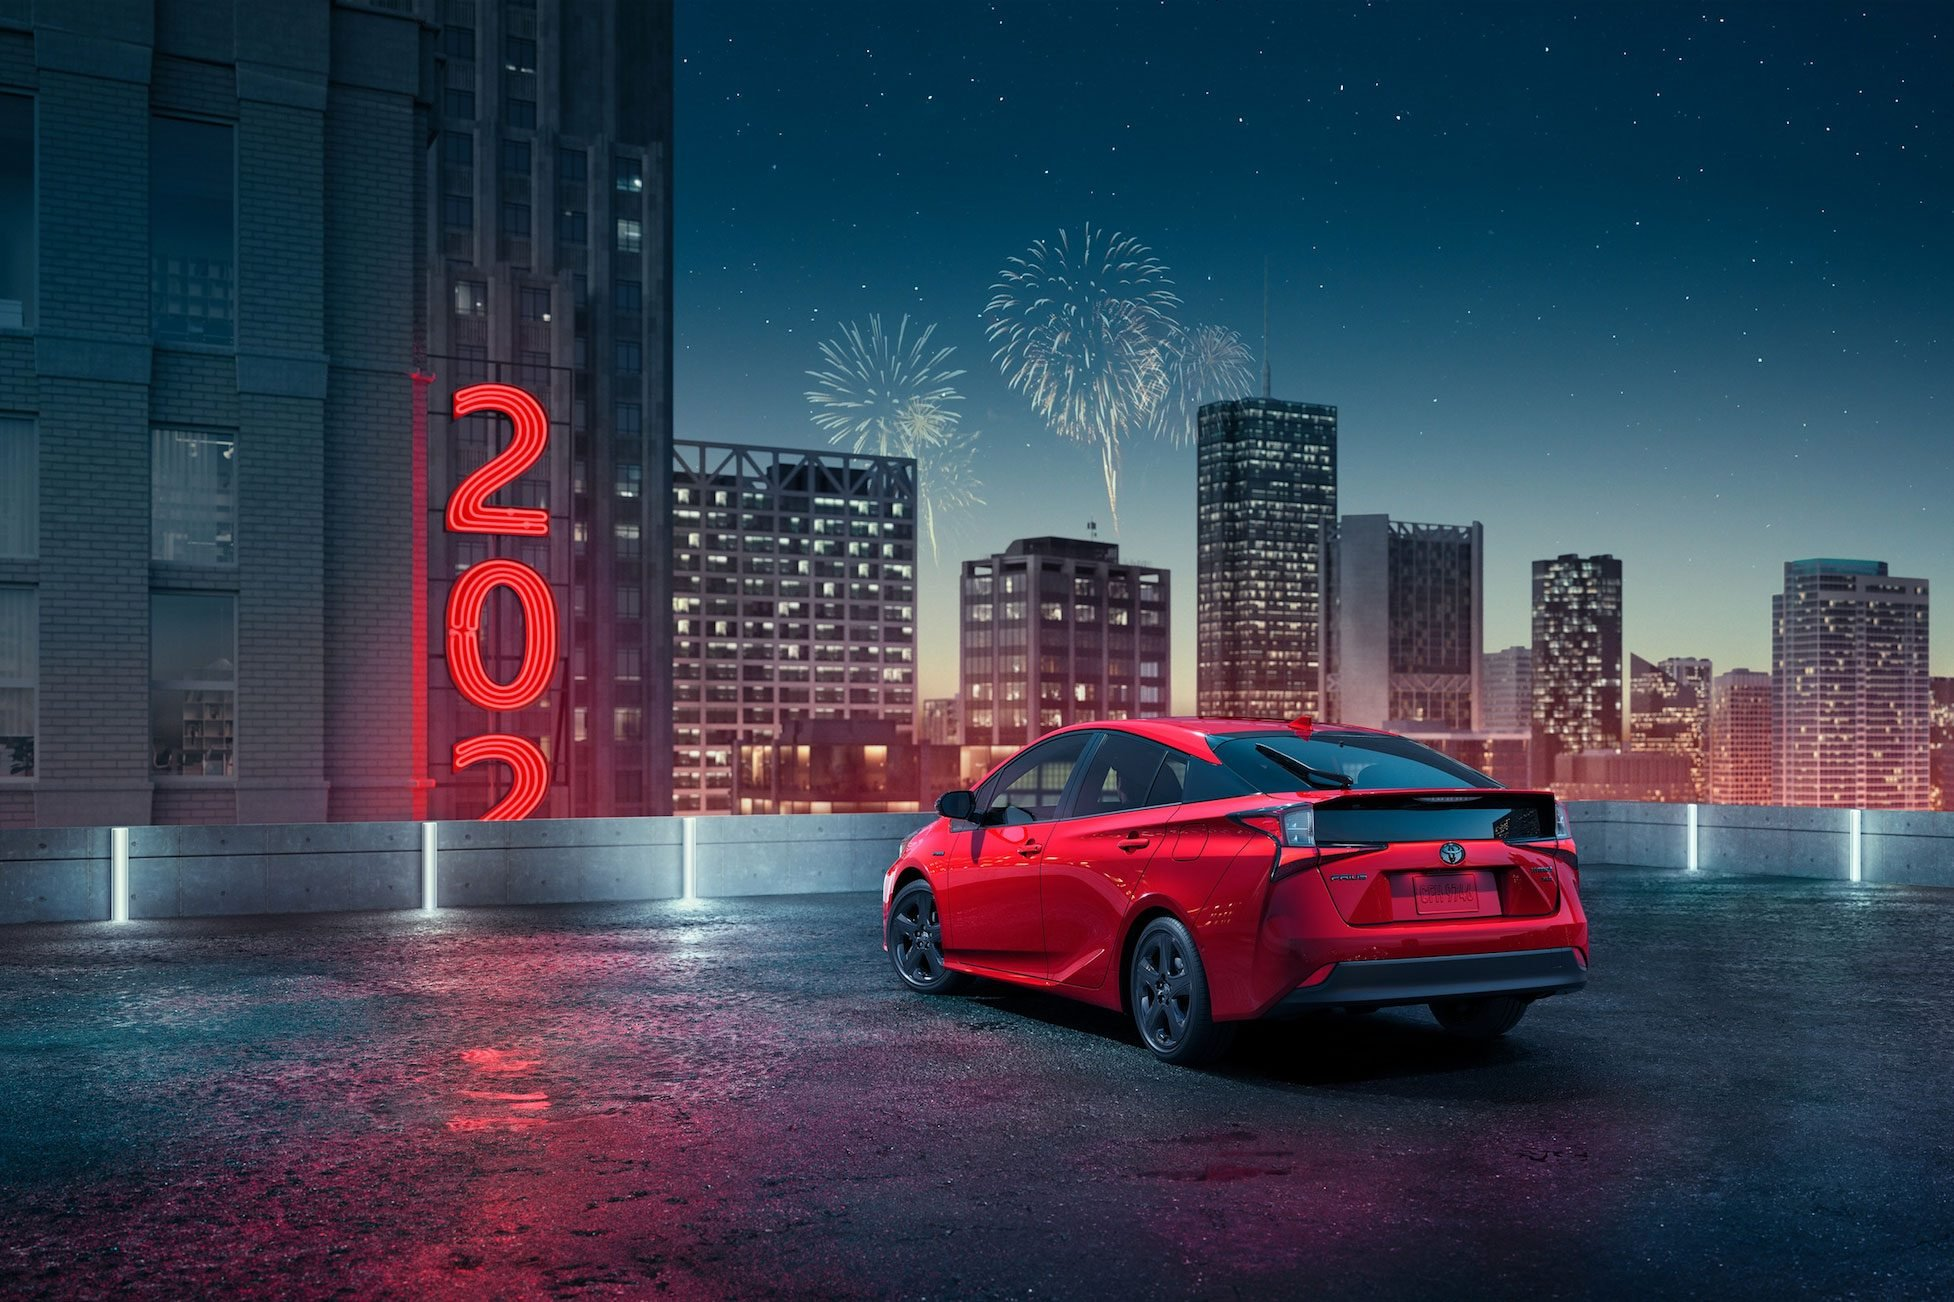 2021 toyota prius on a rooftop ringing in the new year with fireworks